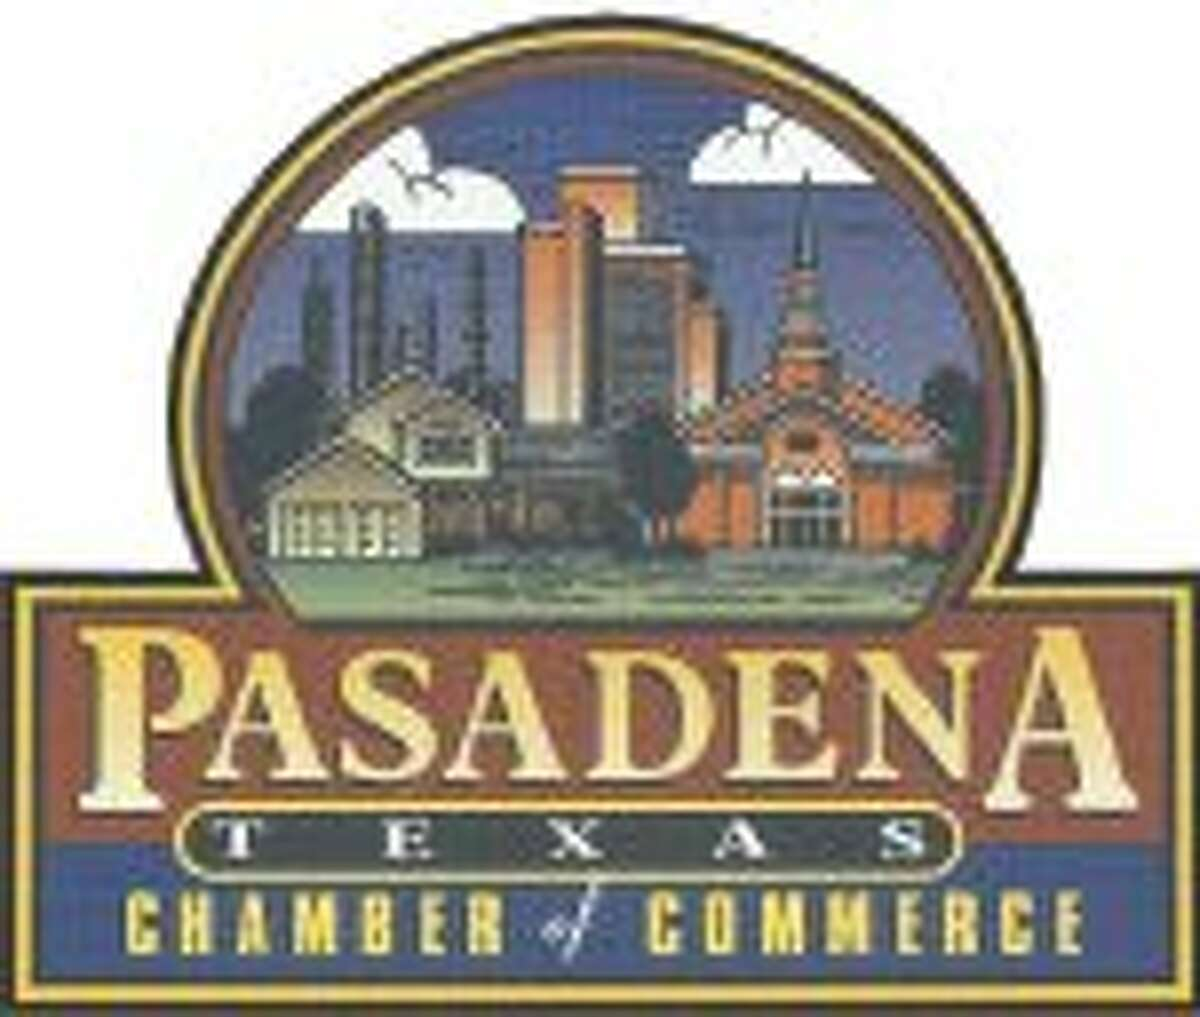 The Pasadena Chamber of Commerce Monthly Membership Luncheon will be held Thursday at 11:30 a.m. at First United Methodist Church, 1062 Fairmont Parkway, Pasadena. Guest speaker will be Kirk Lewis, Pasadena Independent School District Superintendent.